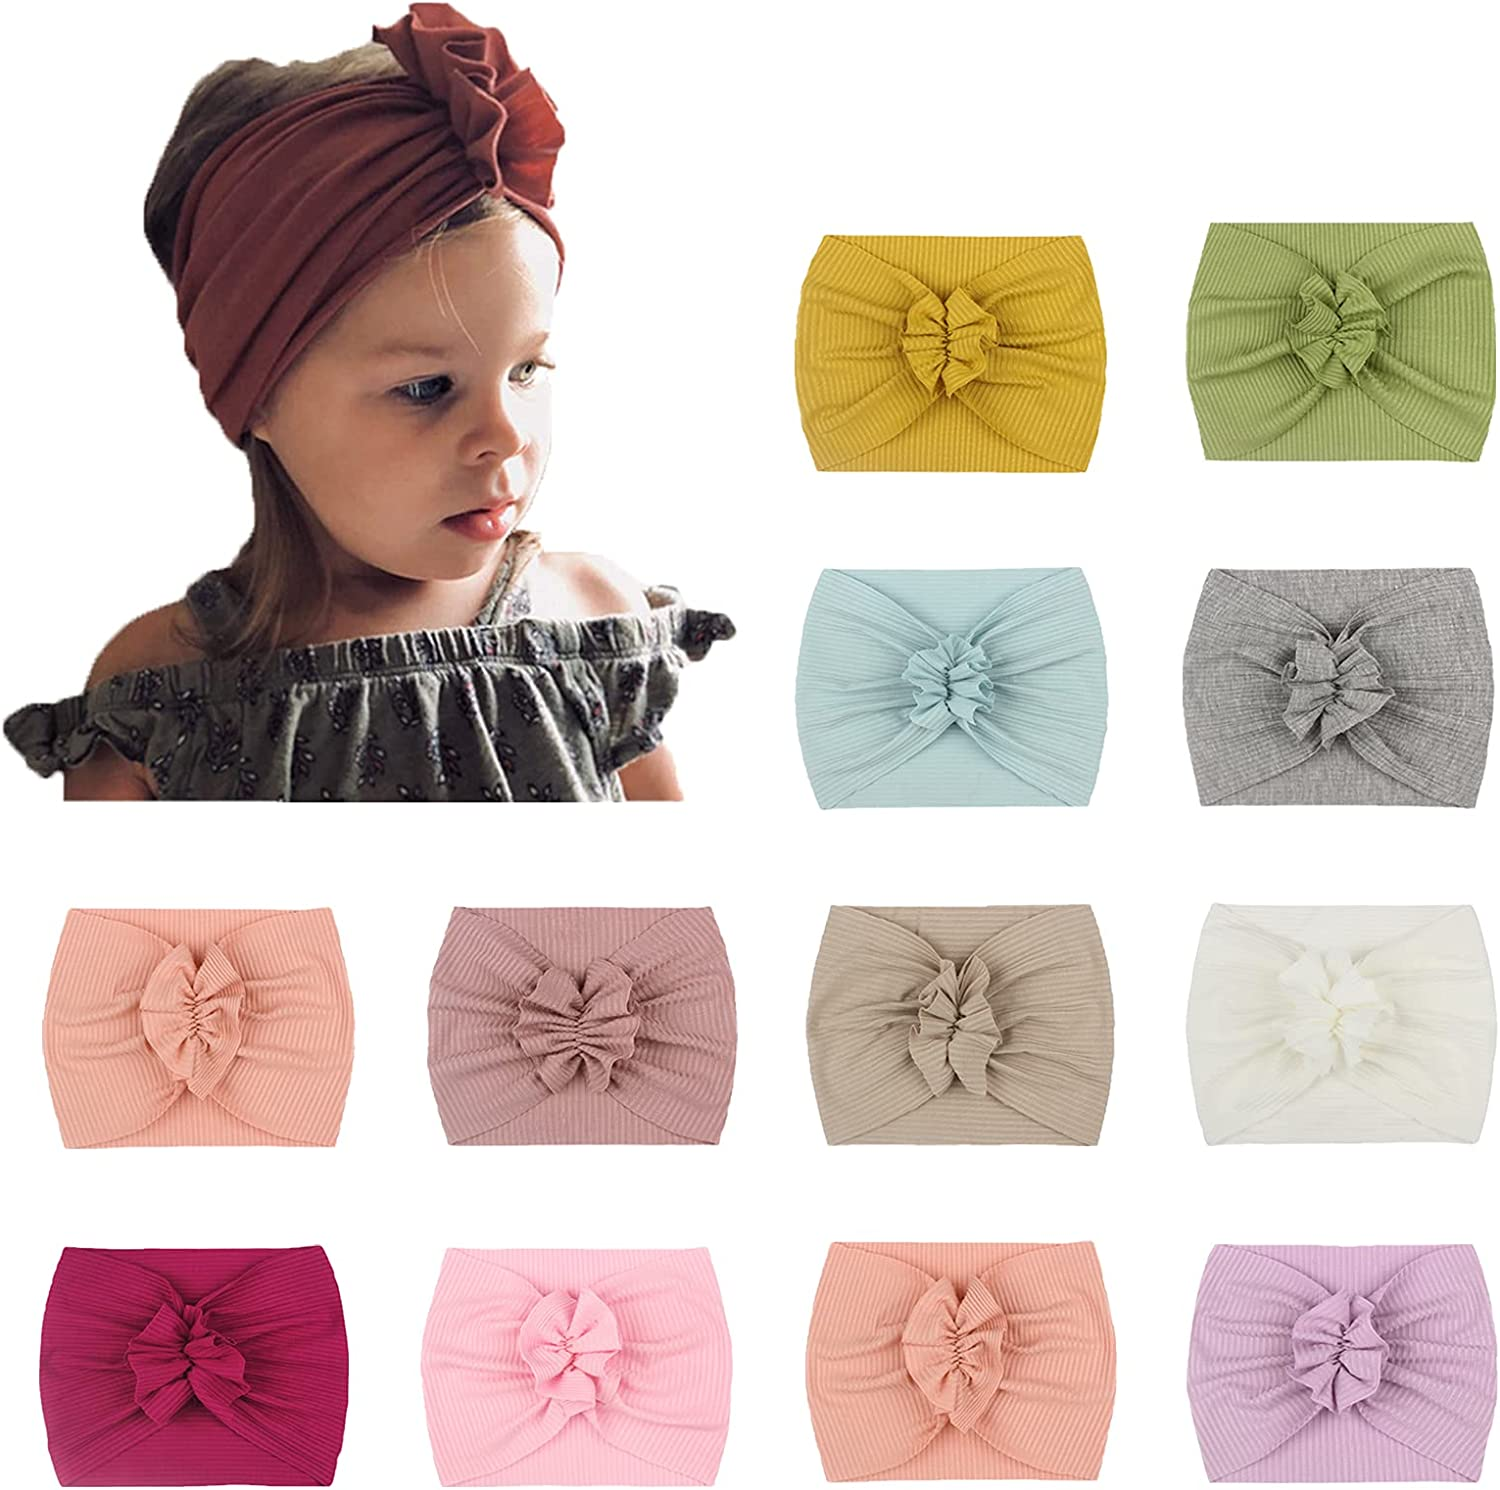 Baby Nylon Headbands Tie-Dyed Hairbands Hair Bows for Baby Girls Newborn Infant Toddlers Kids